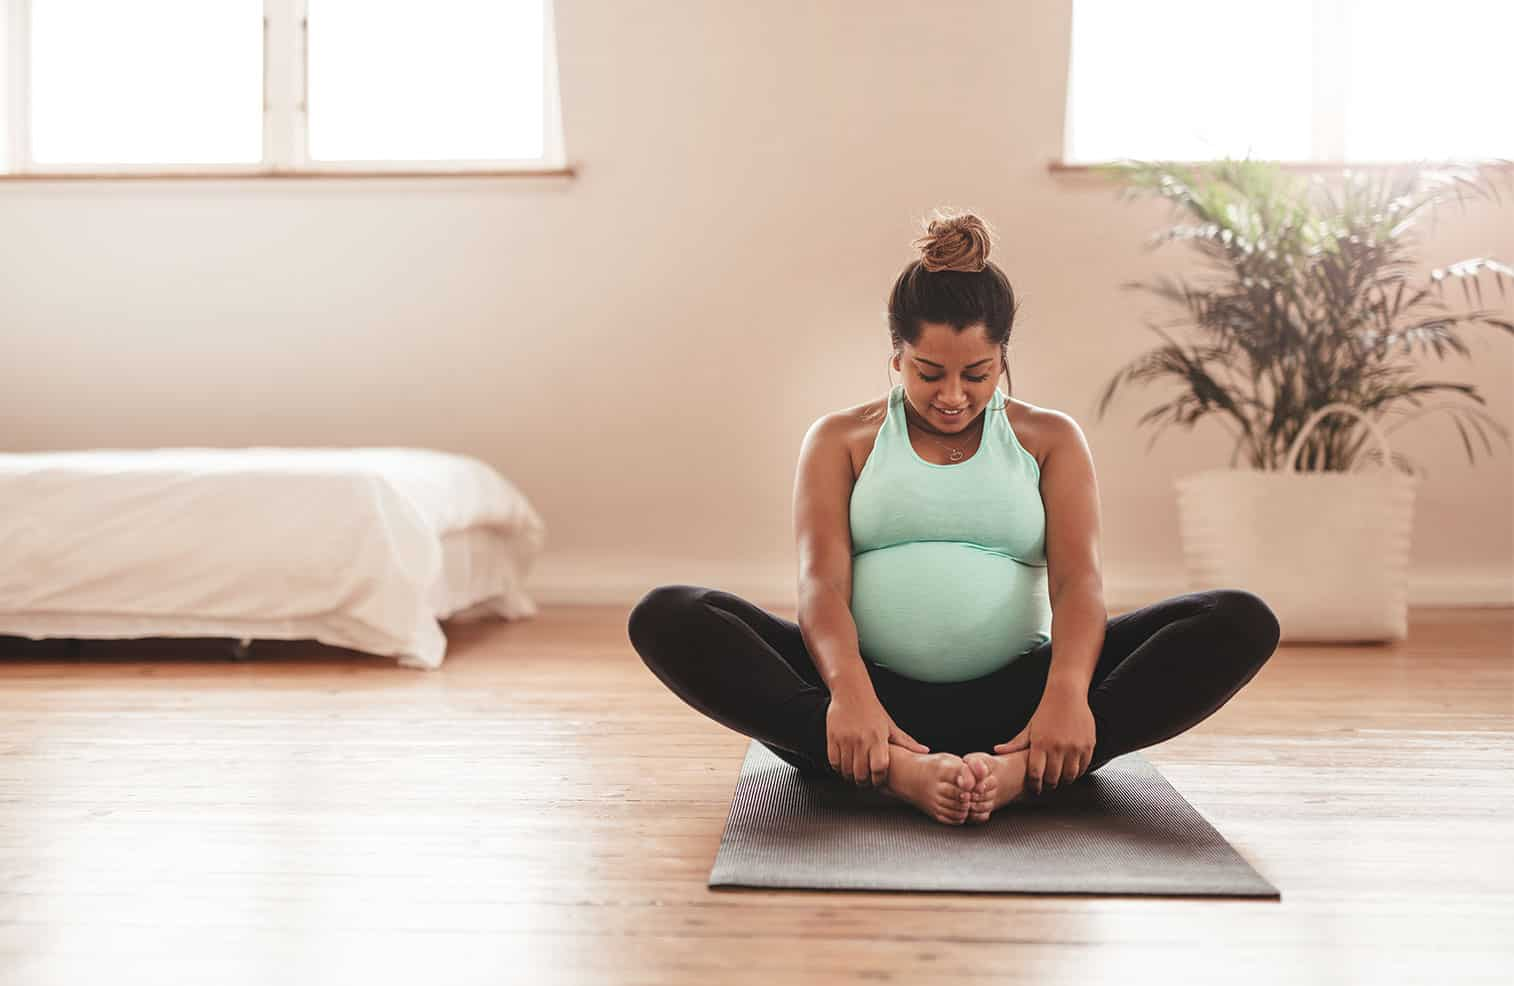 The idea of an easier labour and birth is incredibly appealing - so why not prepare for labour with these easy exercises that will not only make labour and birth easier, but will make you feel good too!